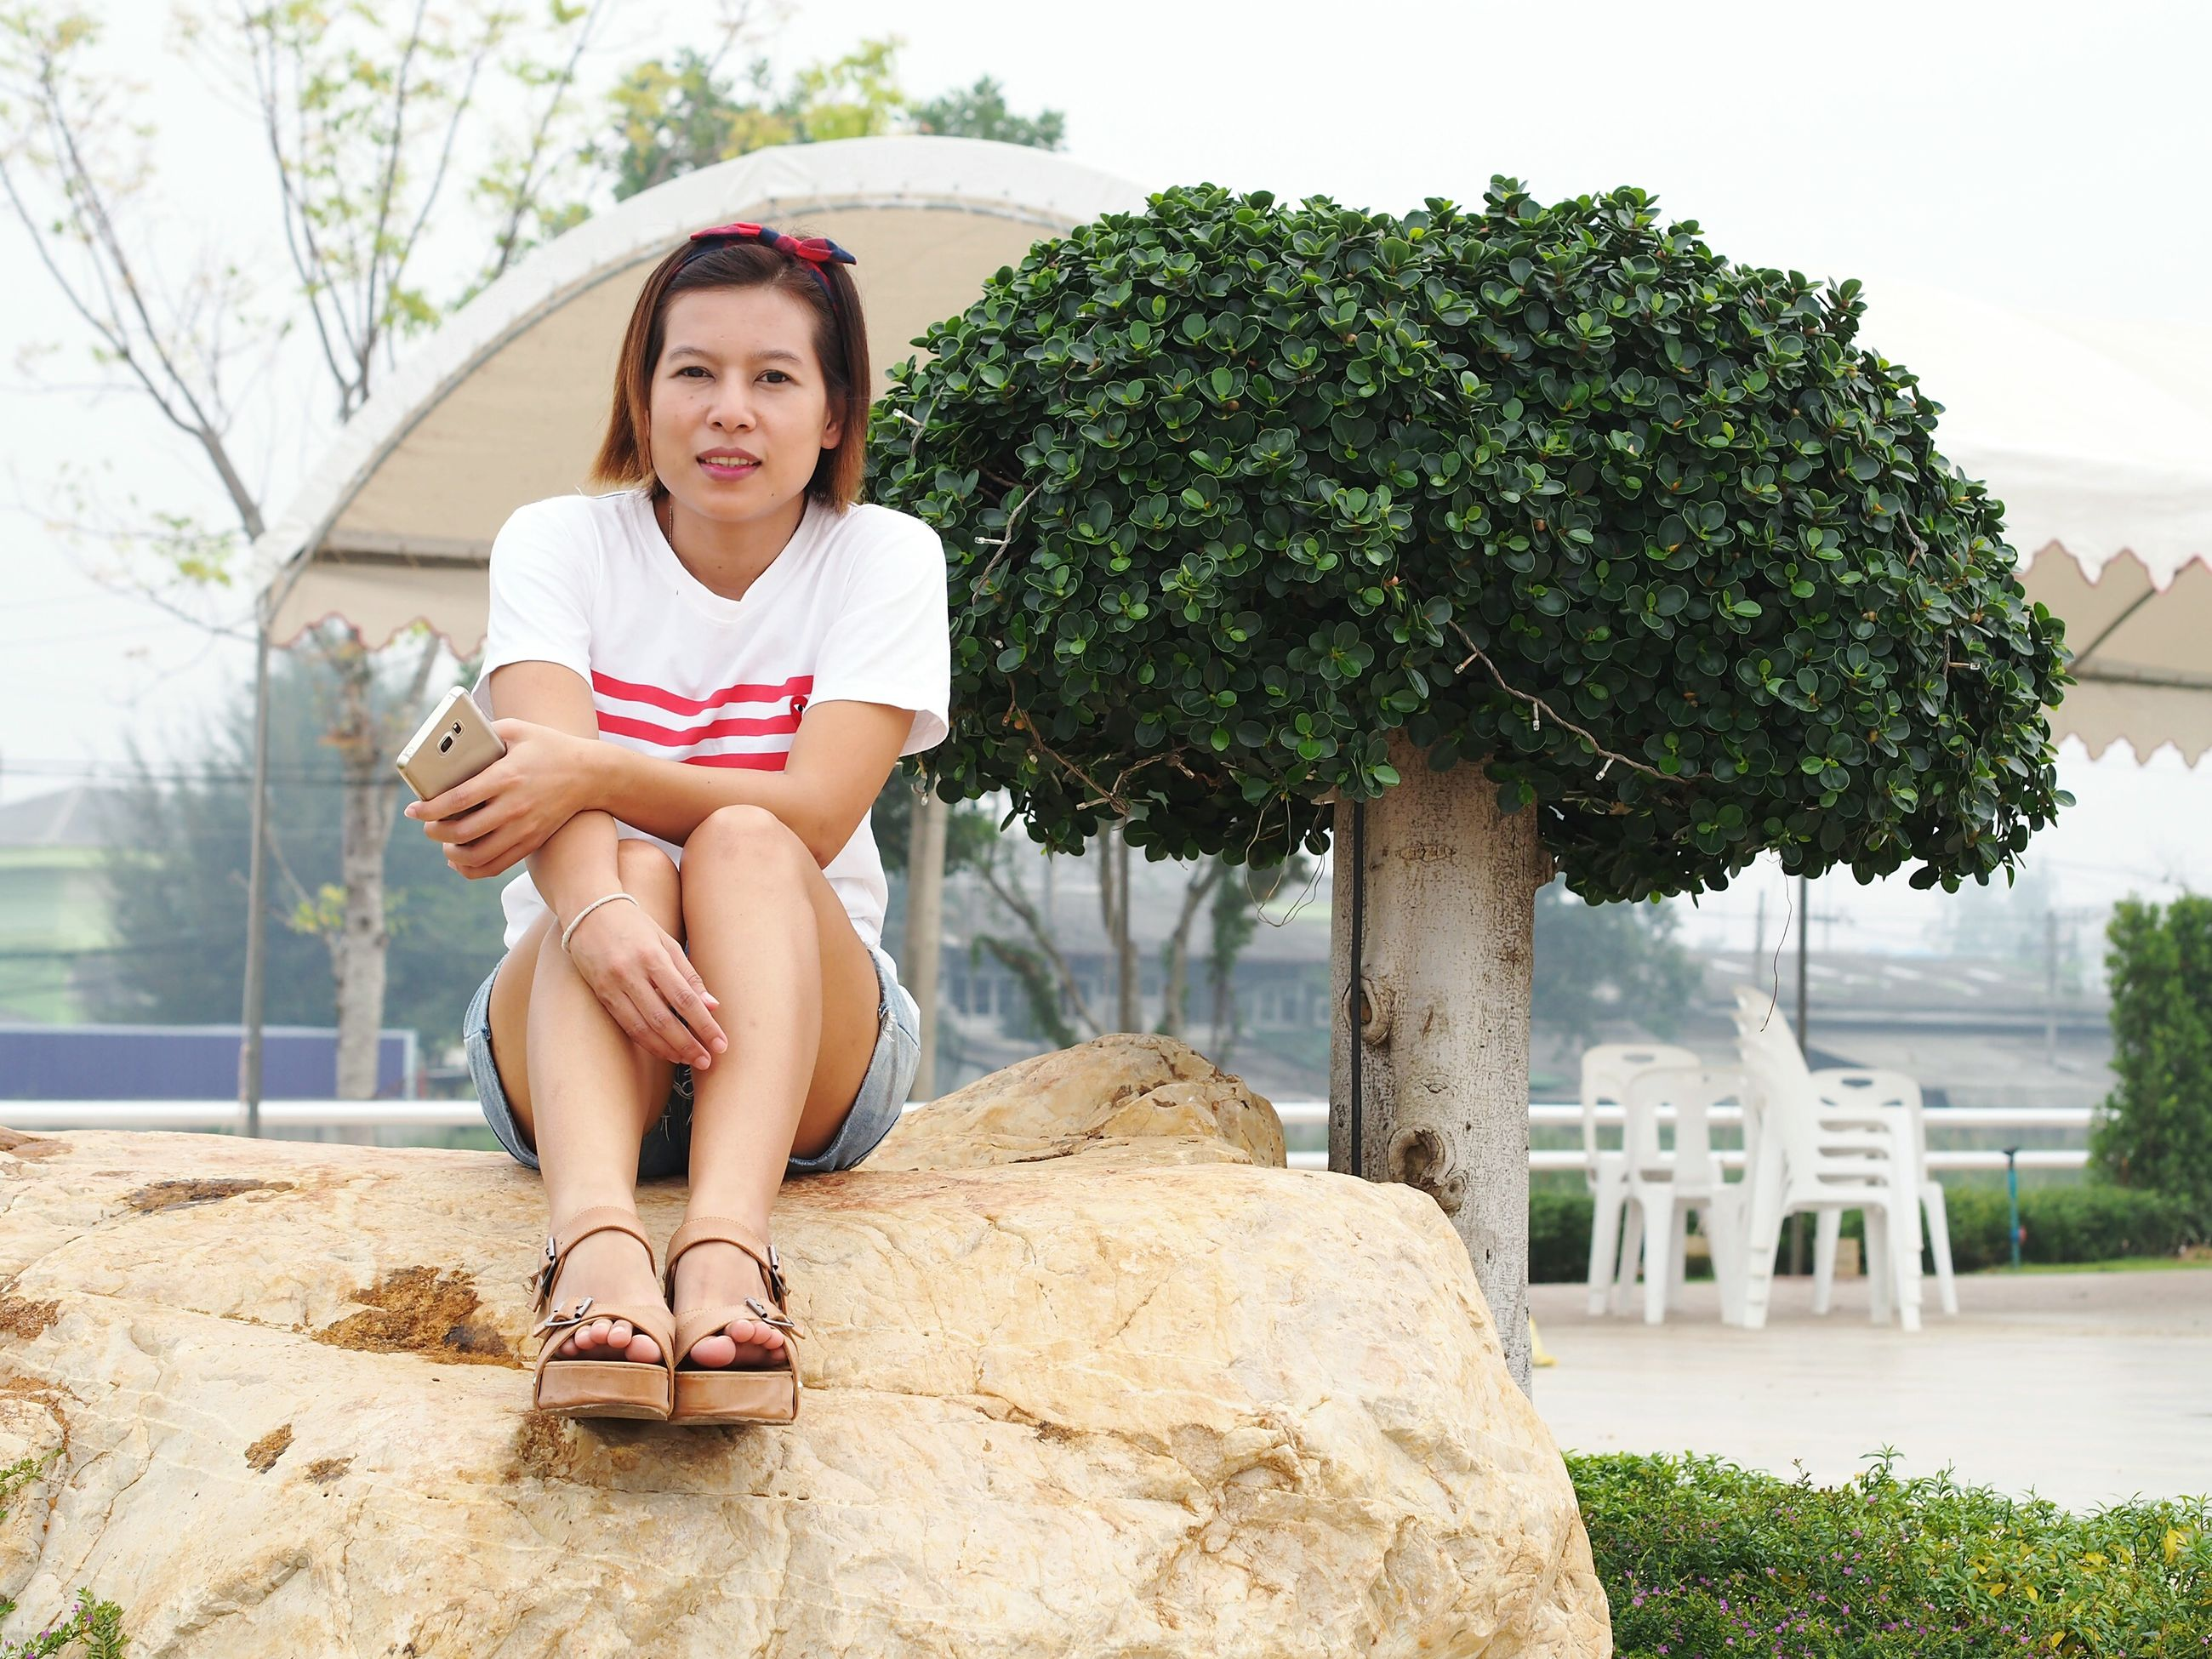 young adult, person, sitting, lifestyles, young women, leisure activity, full length, casual clothing, water, relaxation, tree, smiling, looking at camera, front view, portrait, happiness, standing, three quarter length